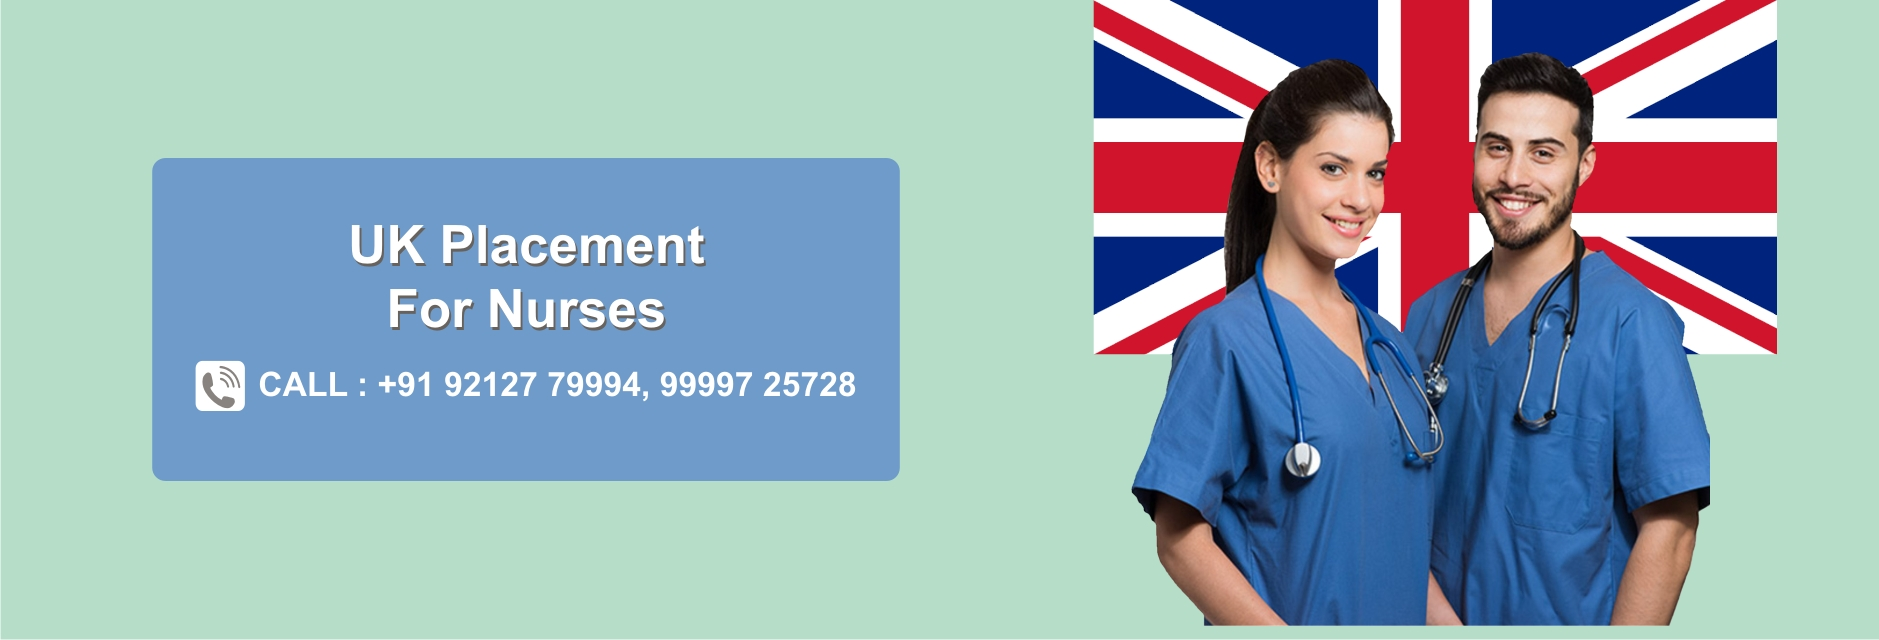 UK-Placement-Nurses